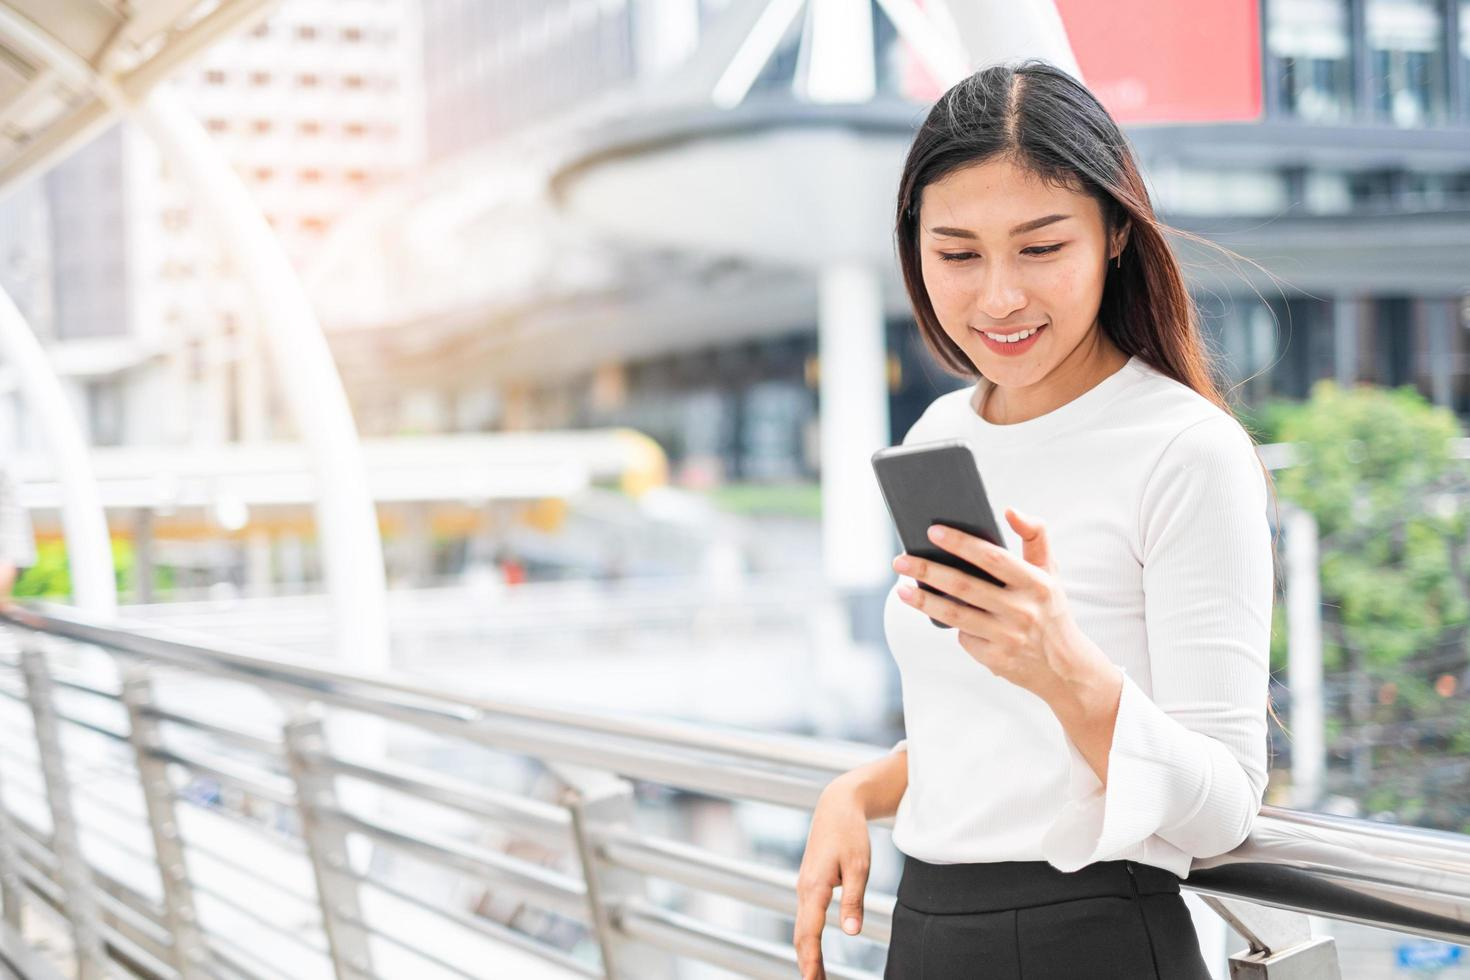 Portrait of Asian woman holding smartphone photo